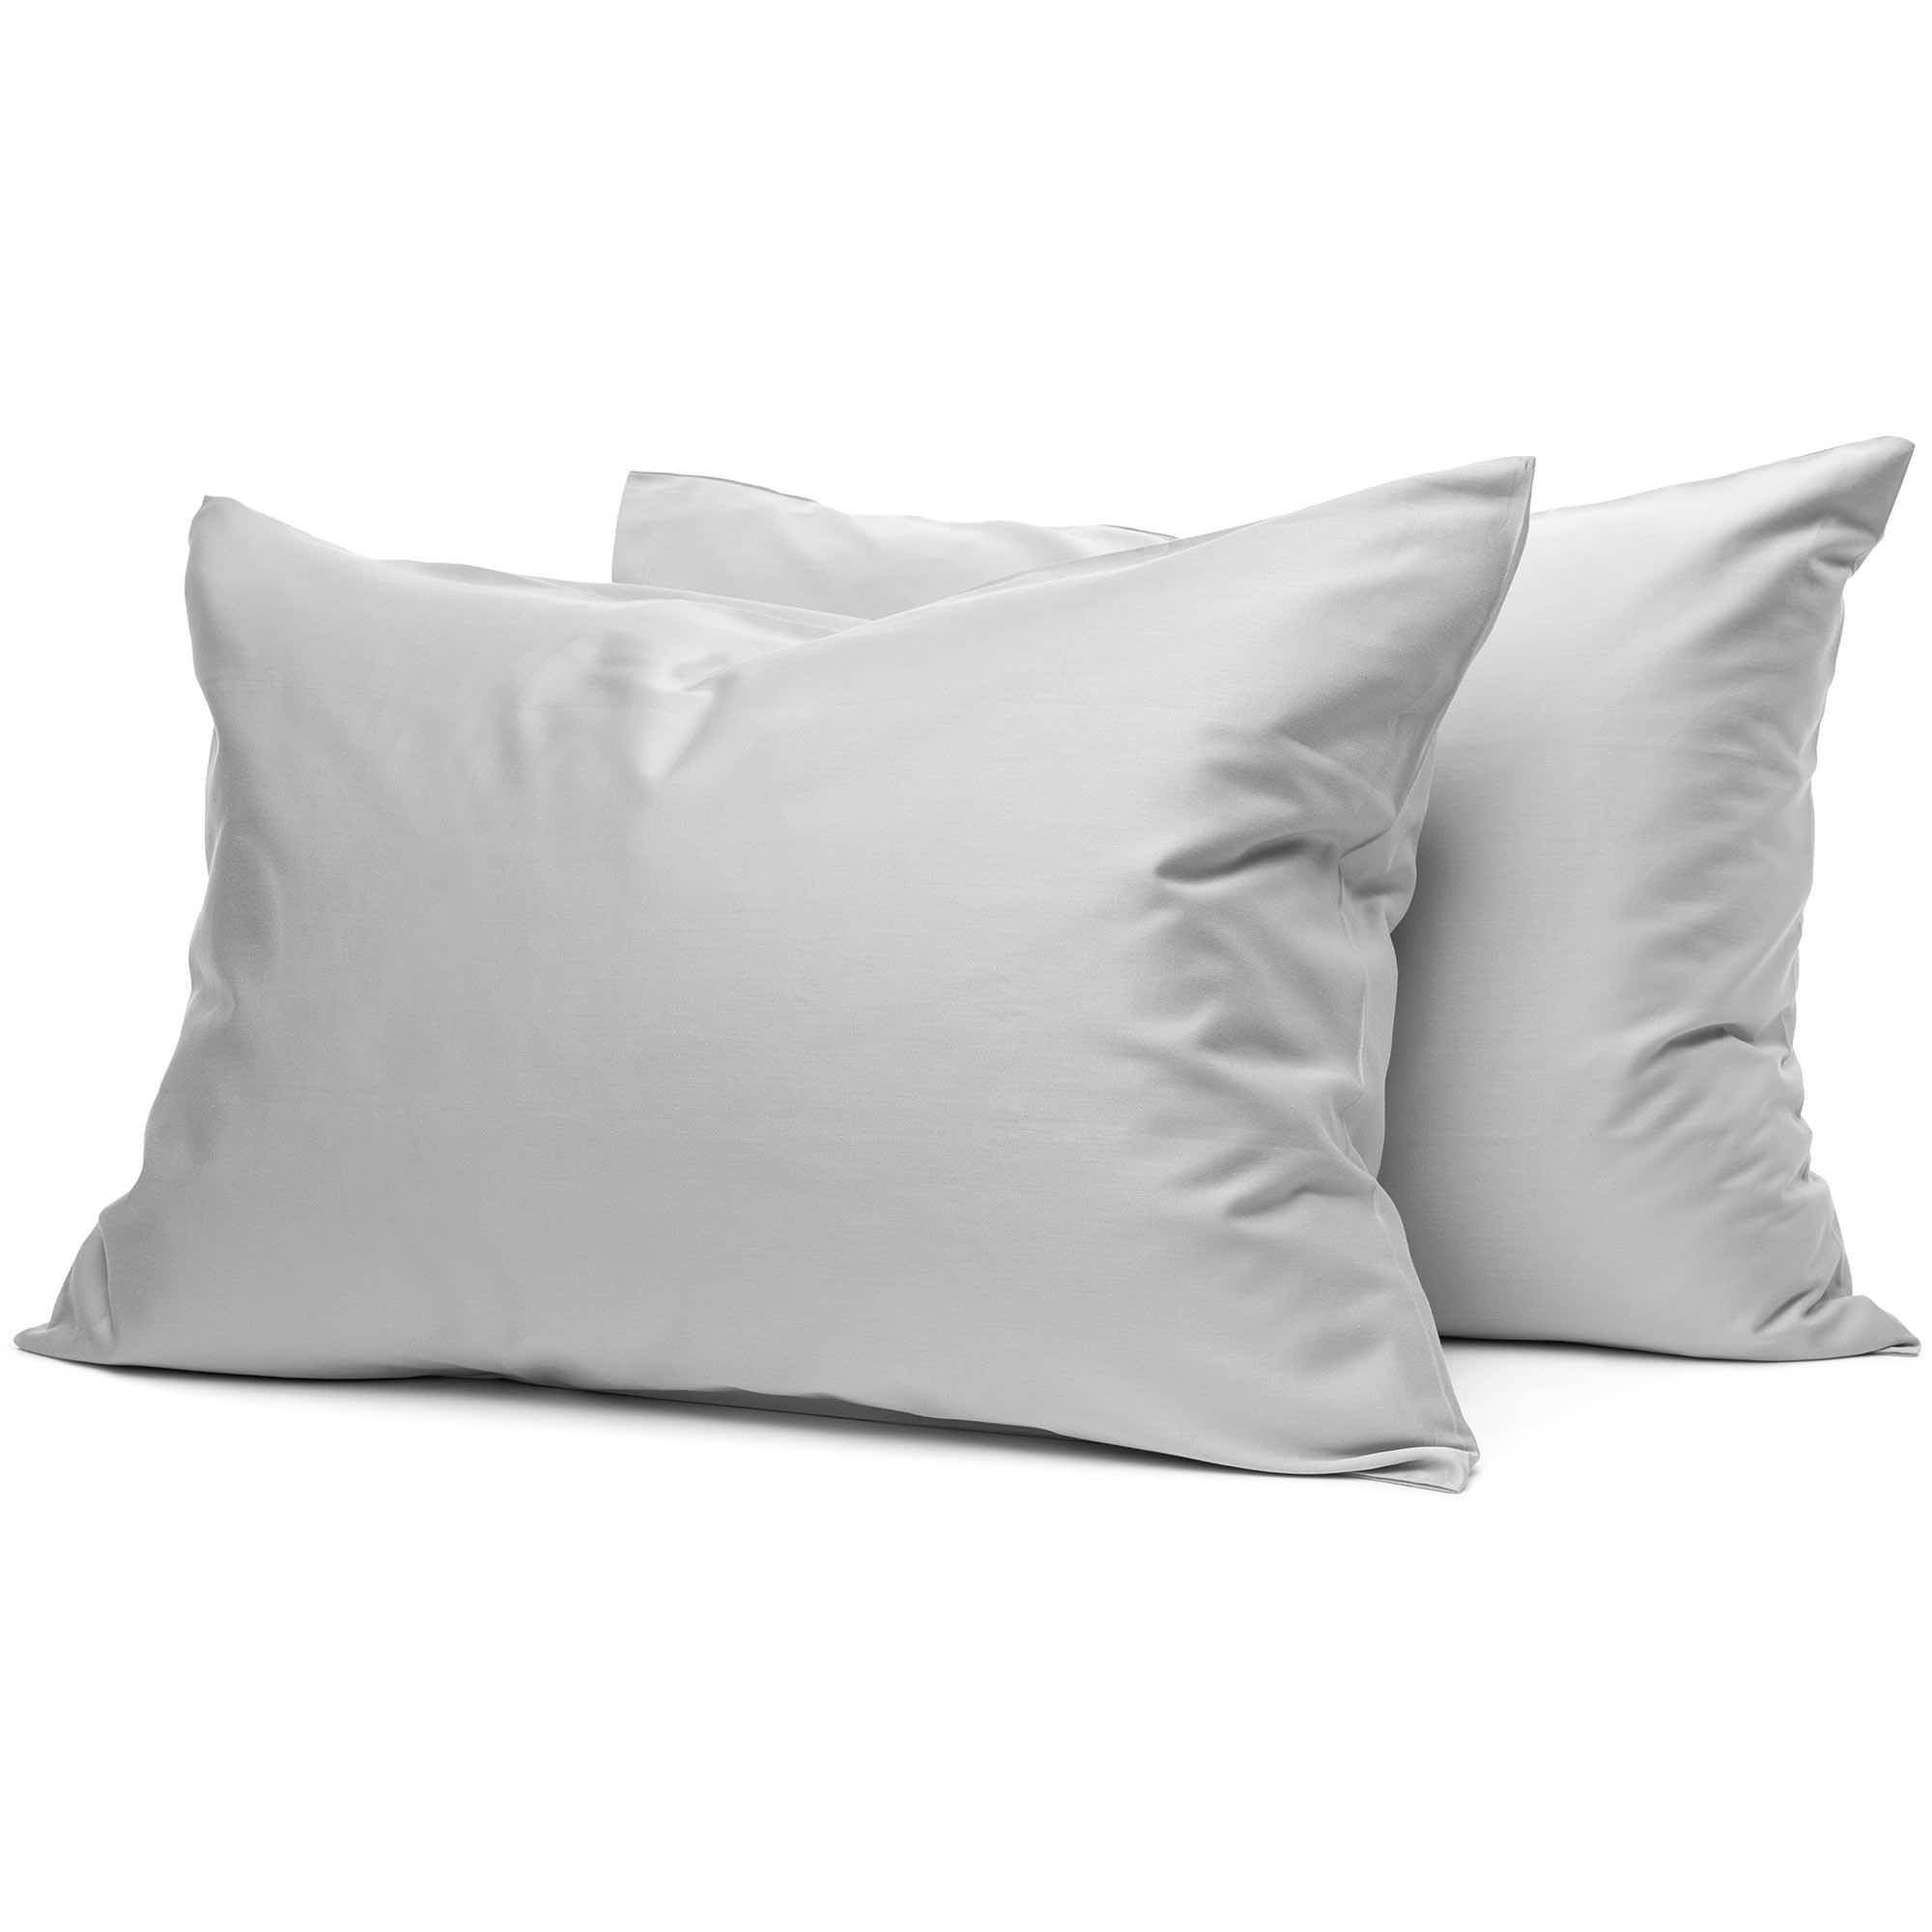 light-gray-luxury-organic-cotton-pillowcases